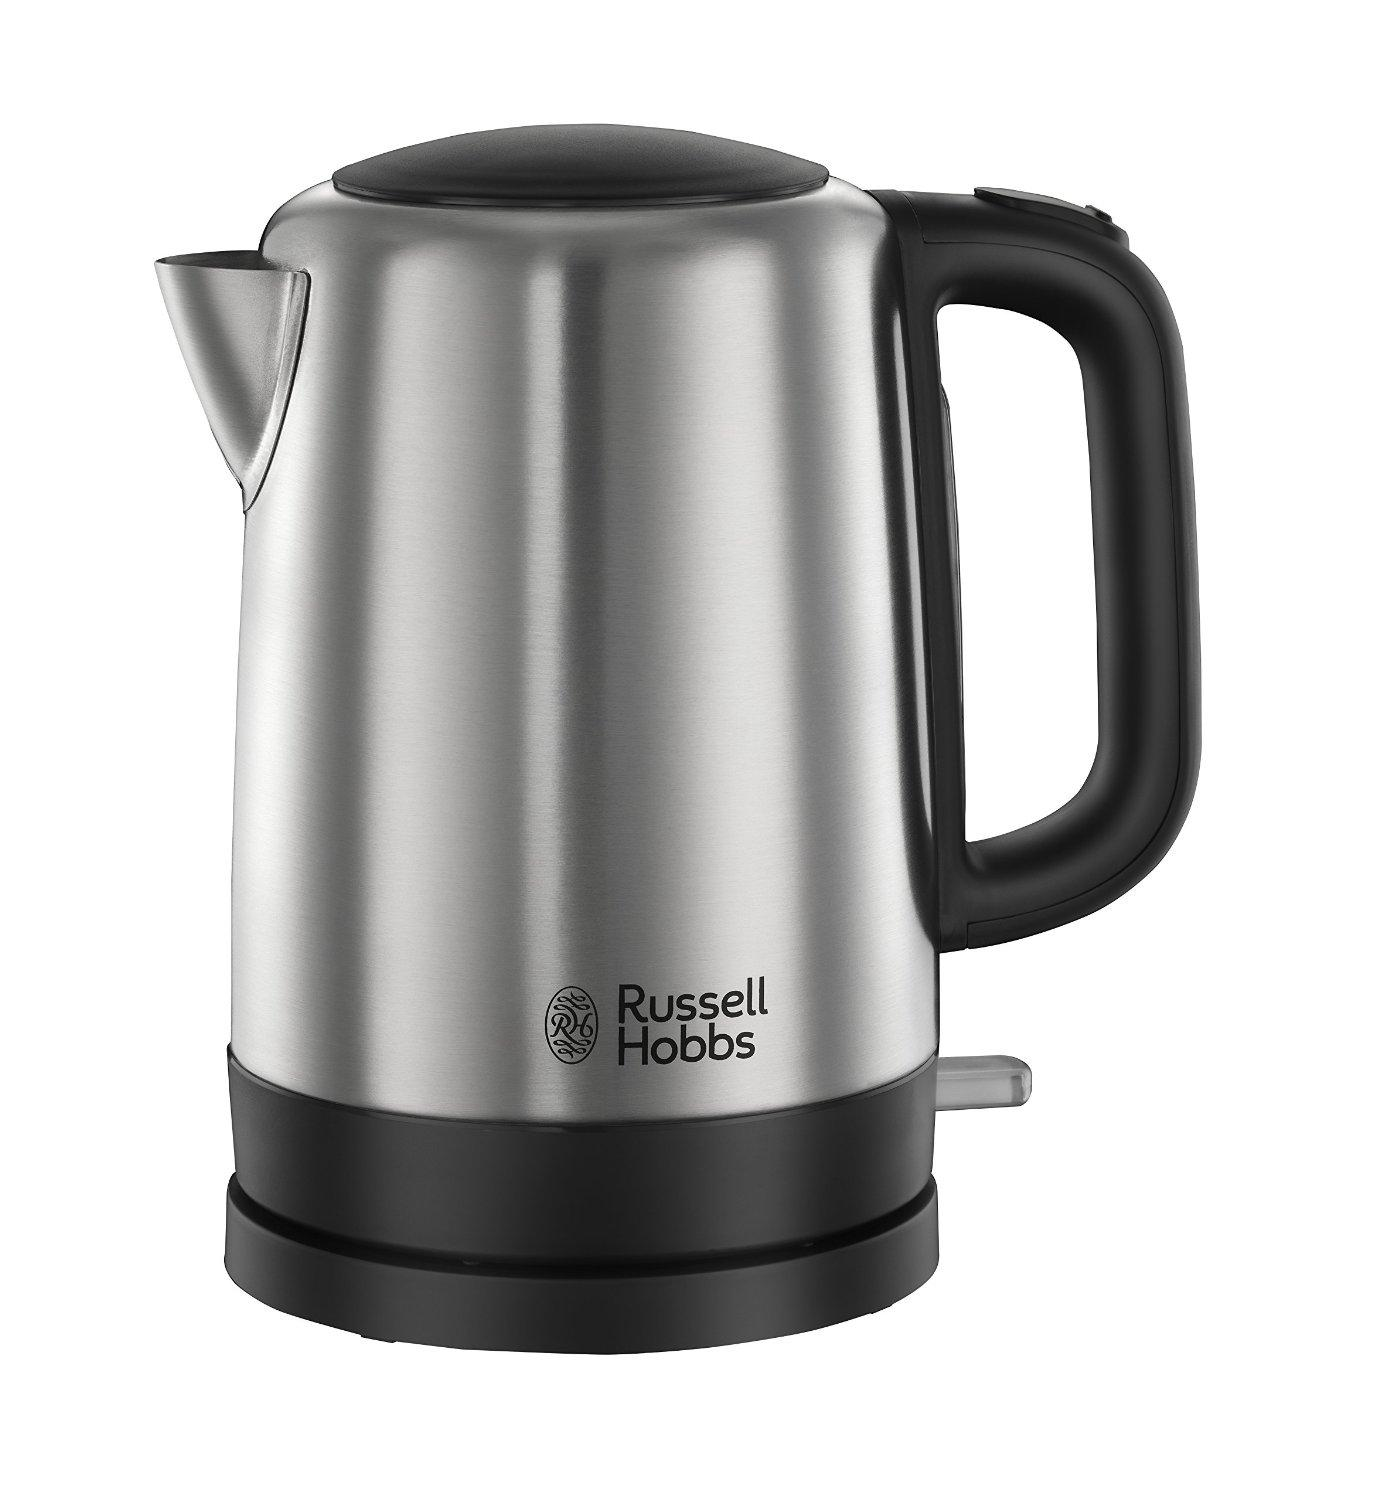 russell hobbs canterbury kettle 20610 1 7 l 3000 w brushed stainless steel silver. Black Bedroom Furniture Sets. Home Design Ideas